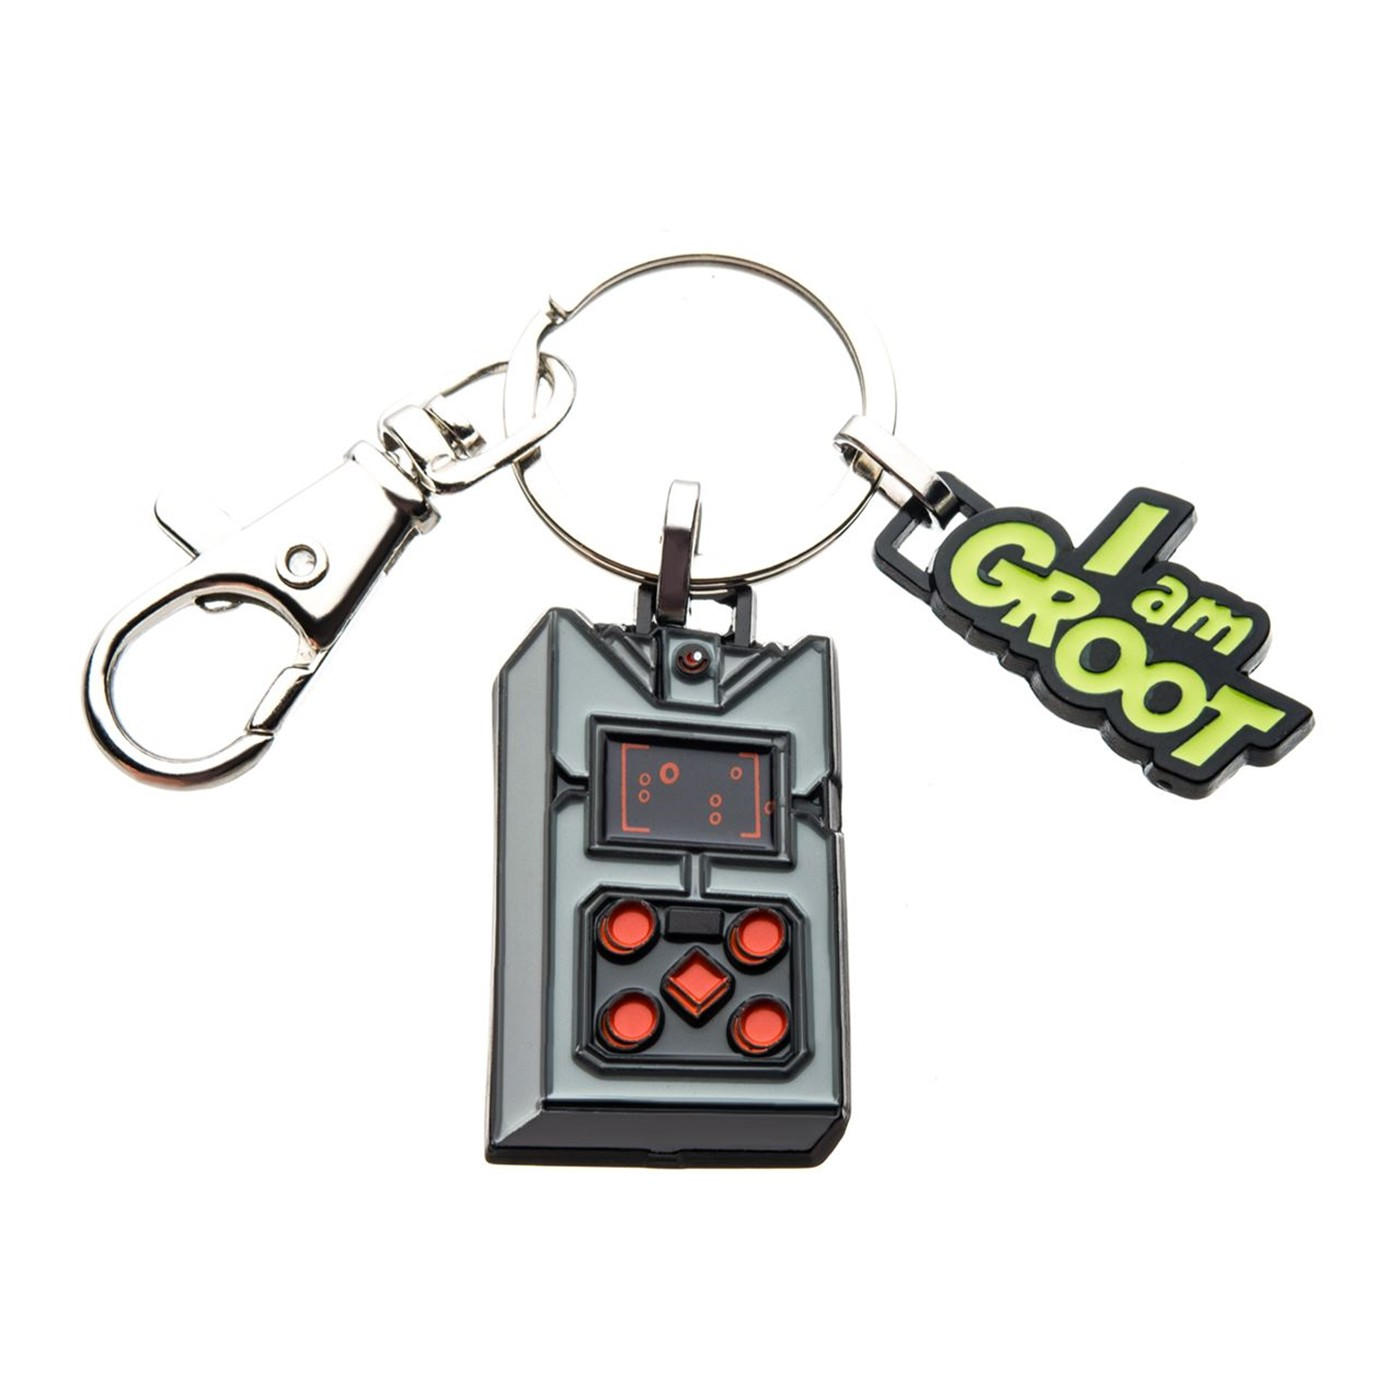 Groot's Game Key Chain